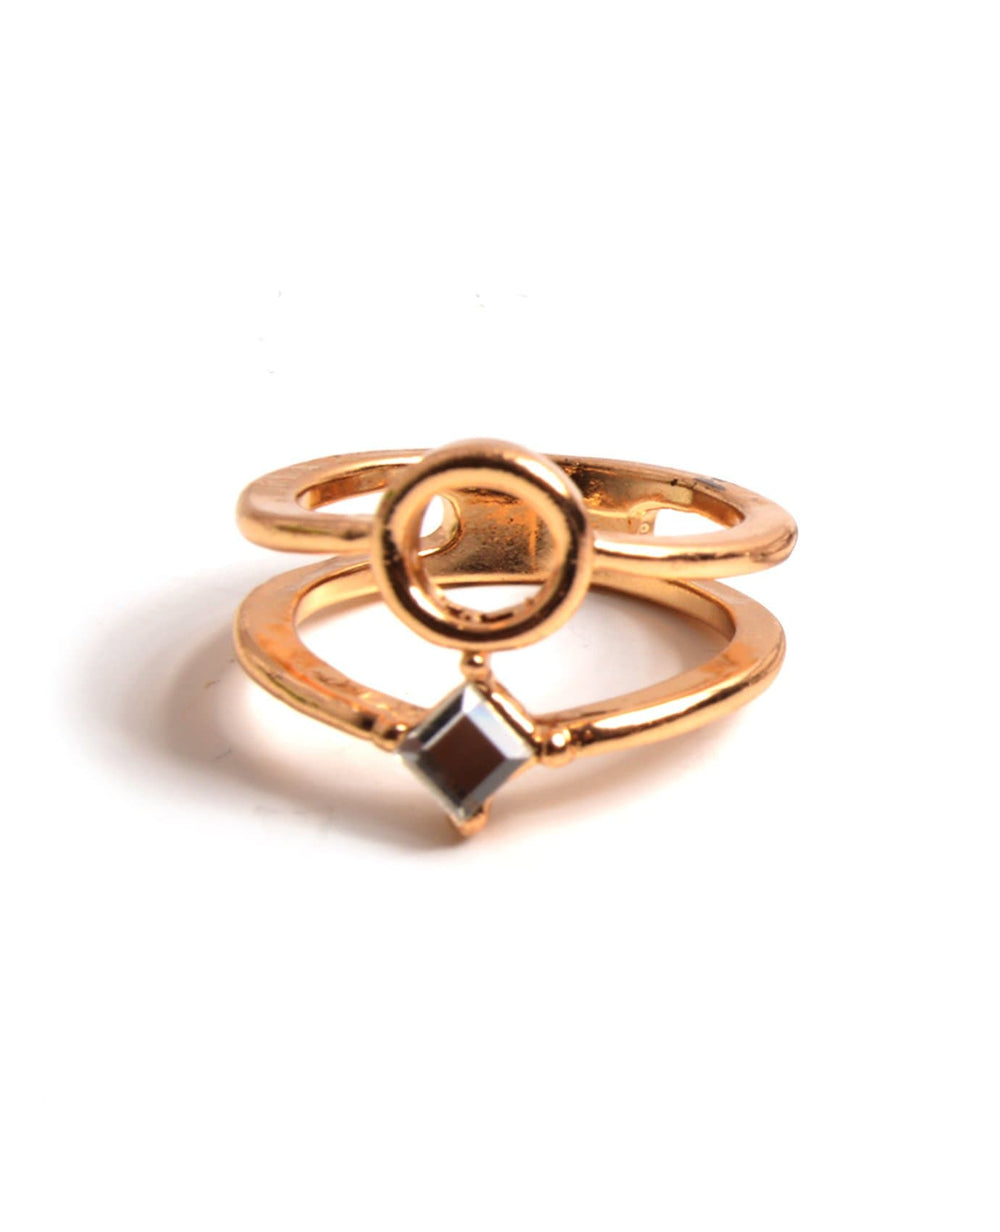 Geometric Figures Ring